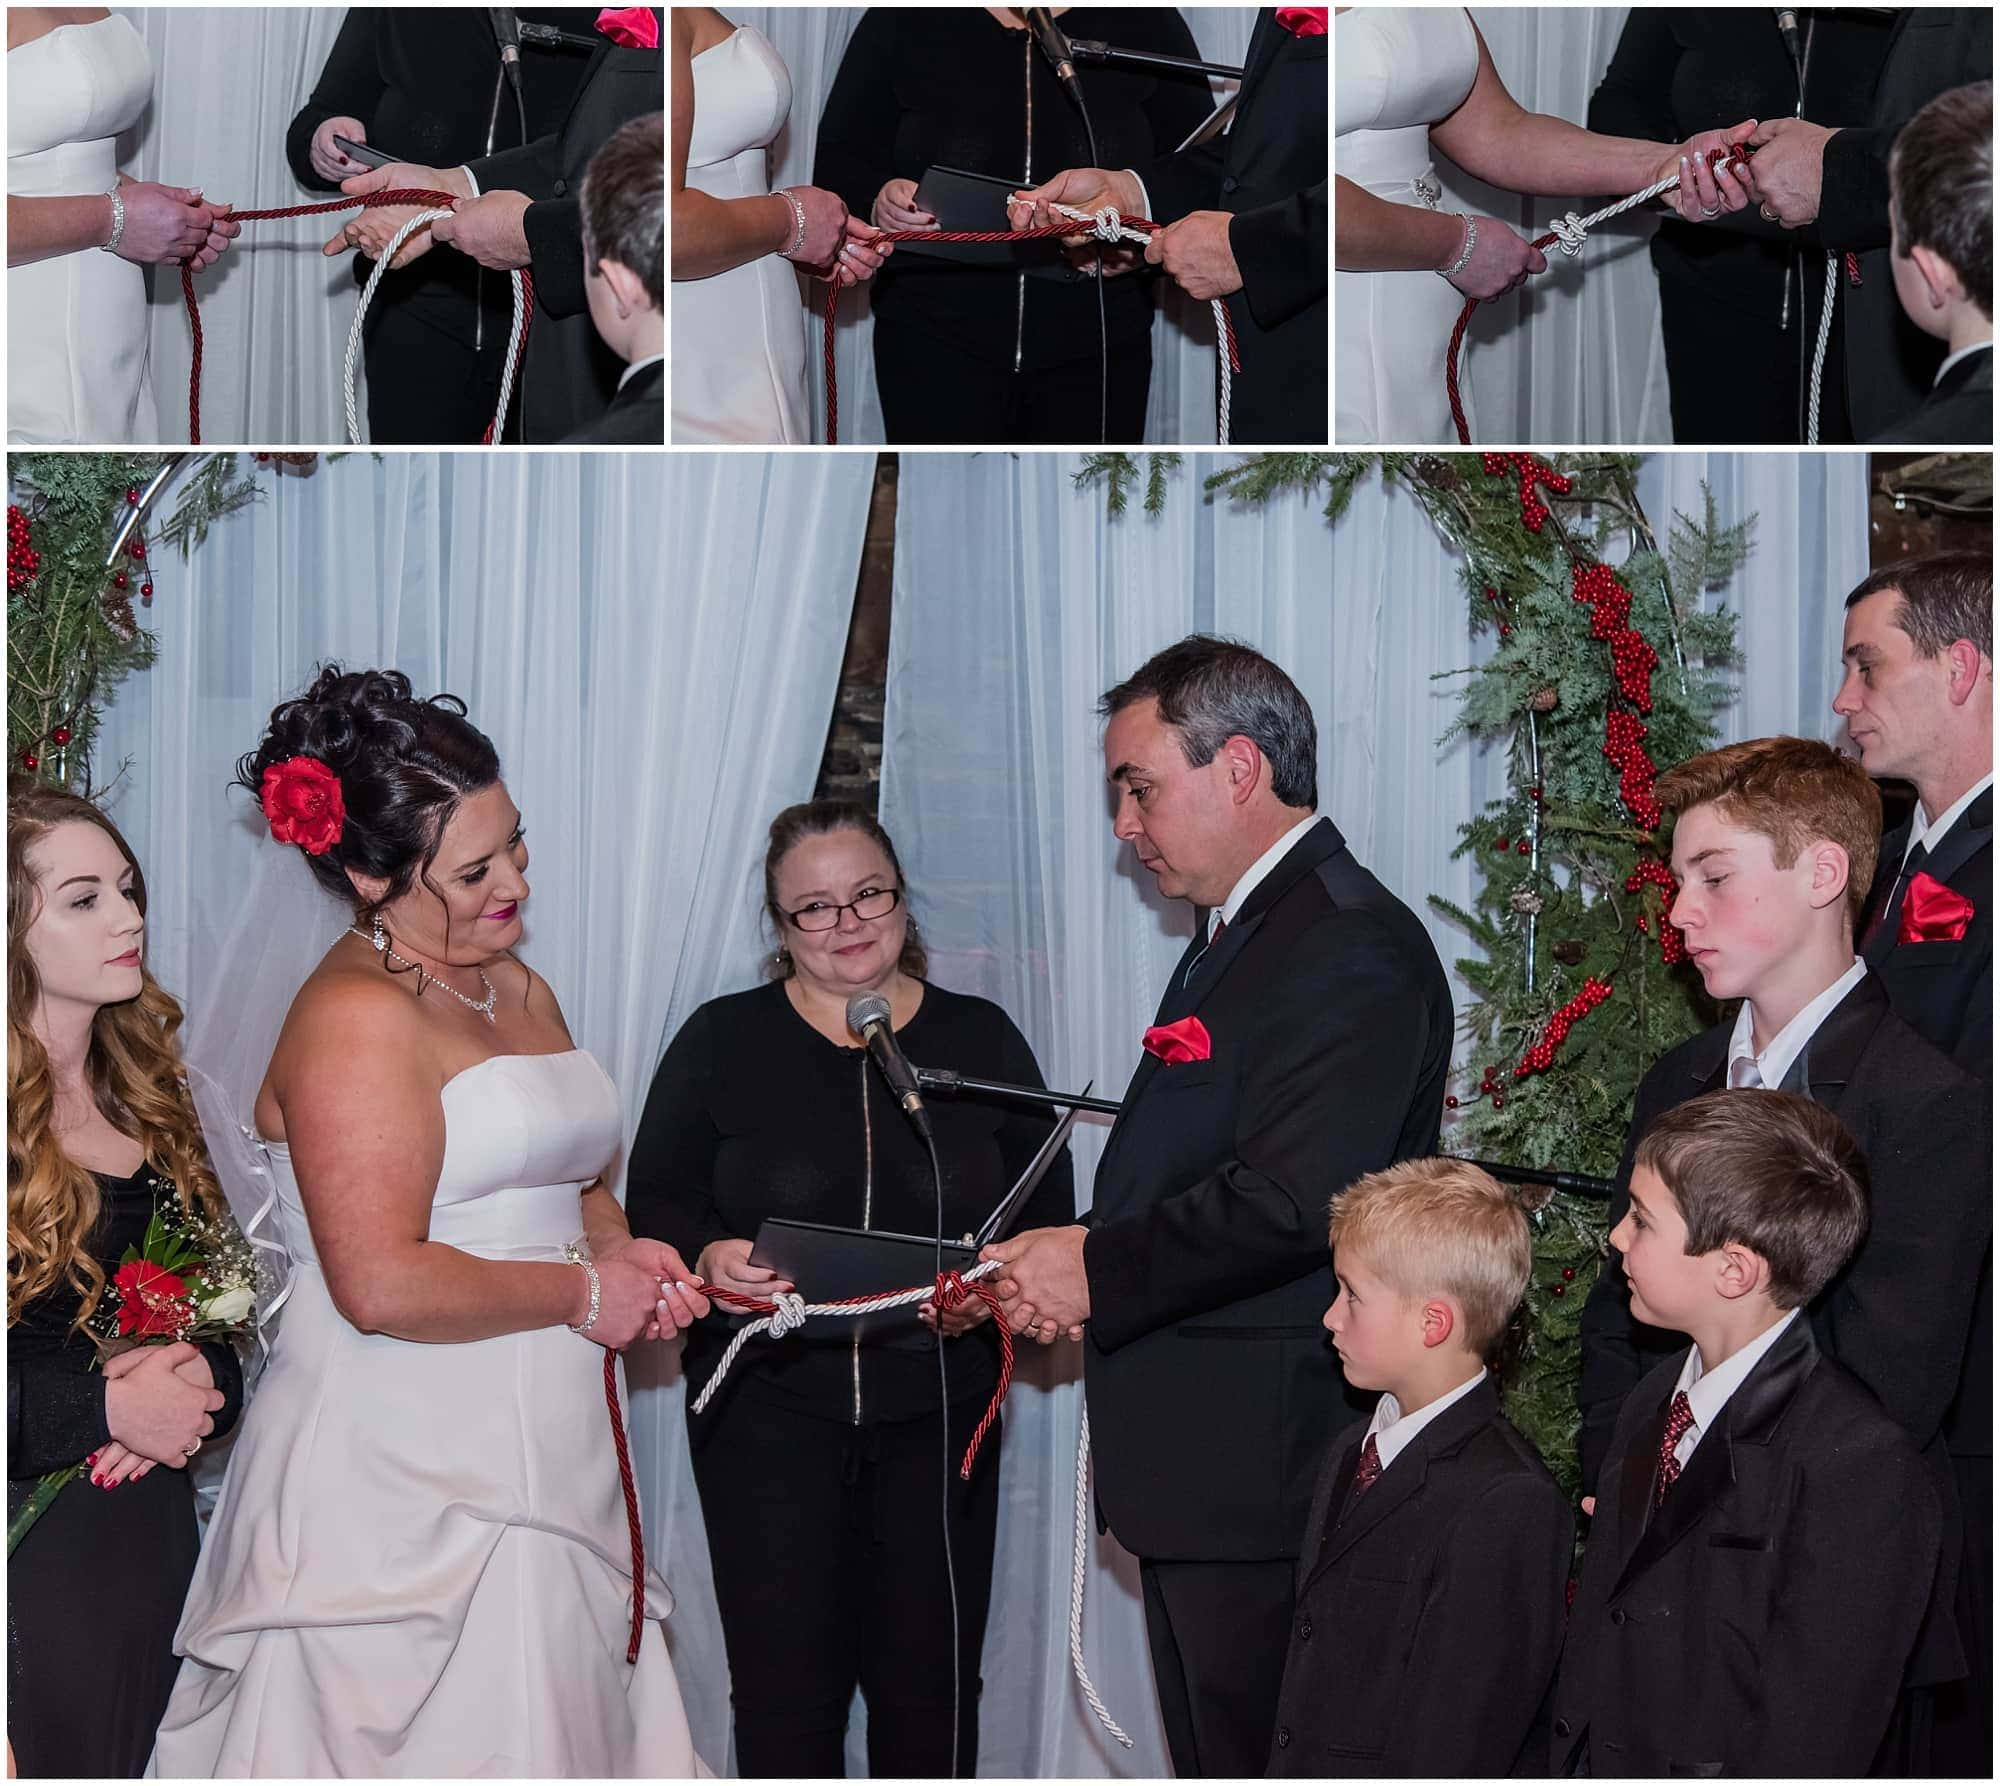 Bride and groom completing a fisherman's knot or lover's knot during their Nova Scotia wedding ceremony at the Lower Deck Tap Room.